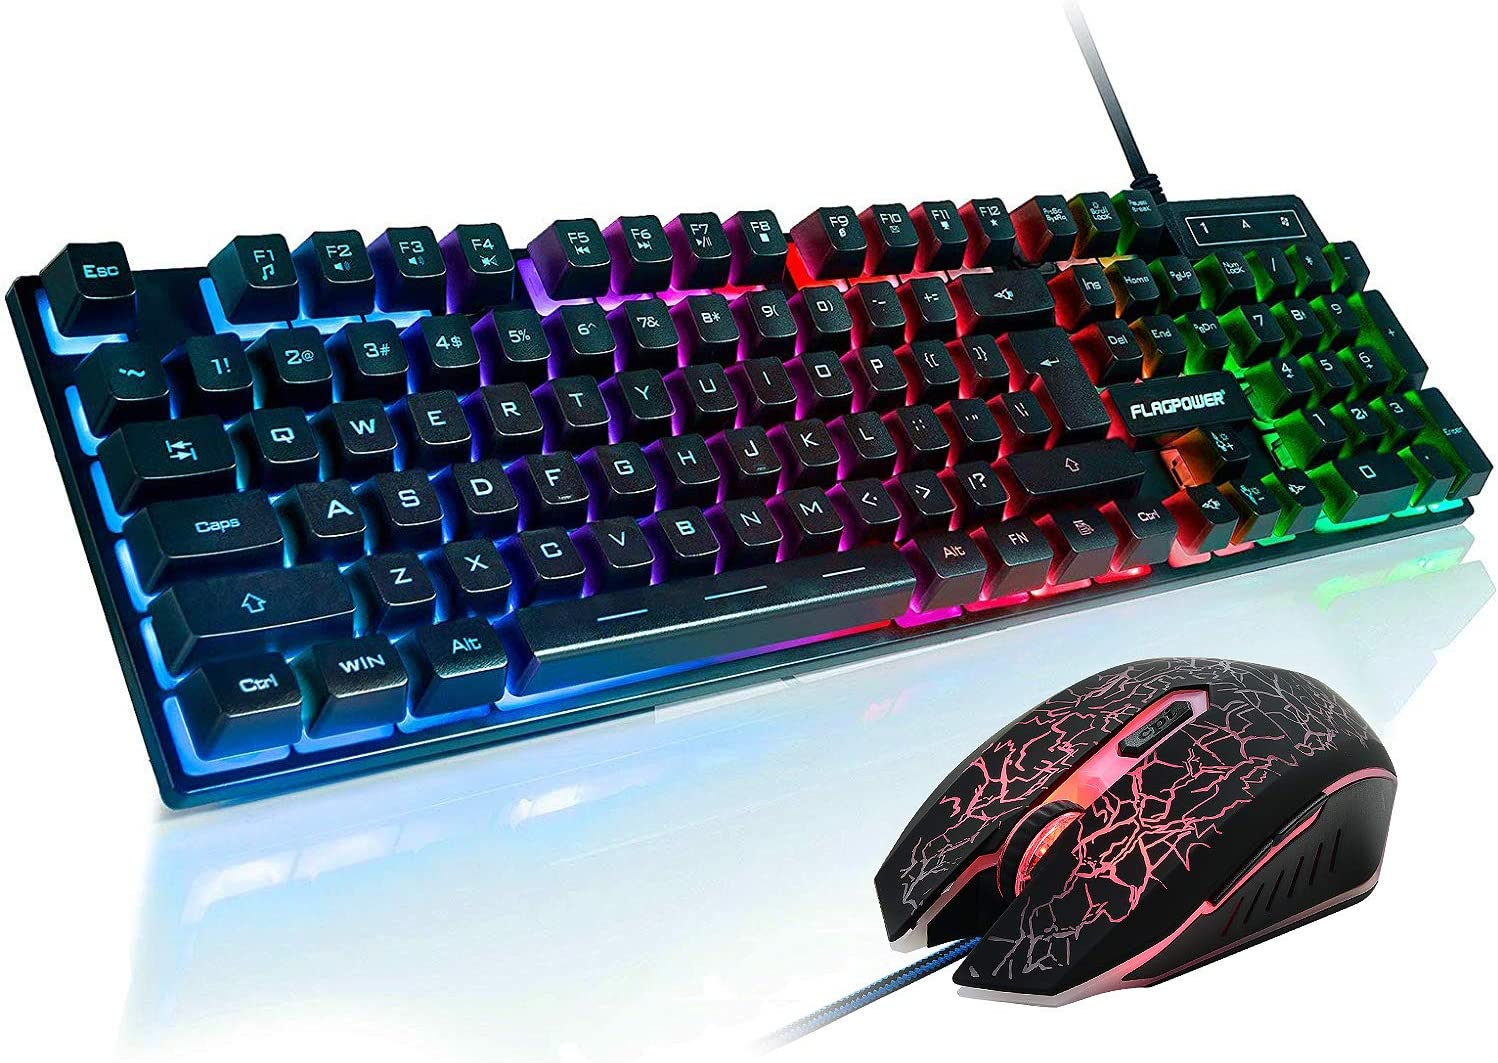 Amazon Com Flagpower Gaming Keyboard And Mouse Combo Rainbow Backlit Mechanical Feeling Keyboard With 4 Colors Breathing Led Backlight Mouse For Pc Laptop Computer Game And Work Computers Accessories